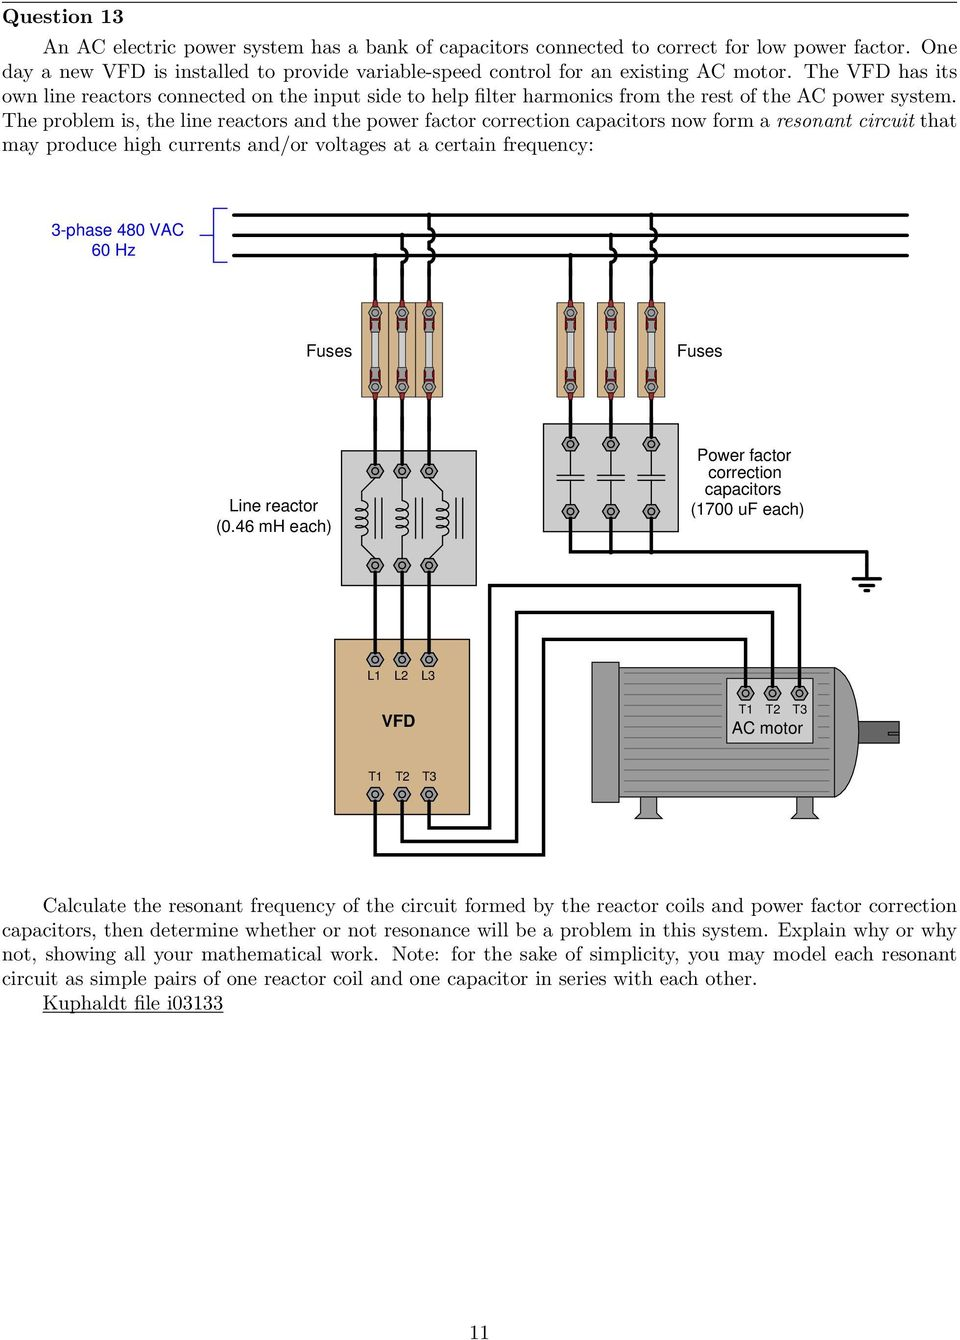 The problem is, the line reactors and the power factor correction capacitors now form a resonant circuit that may produce high currents and/or voltages at a certain frequency: 3-phase 480 VAC 60 Hz